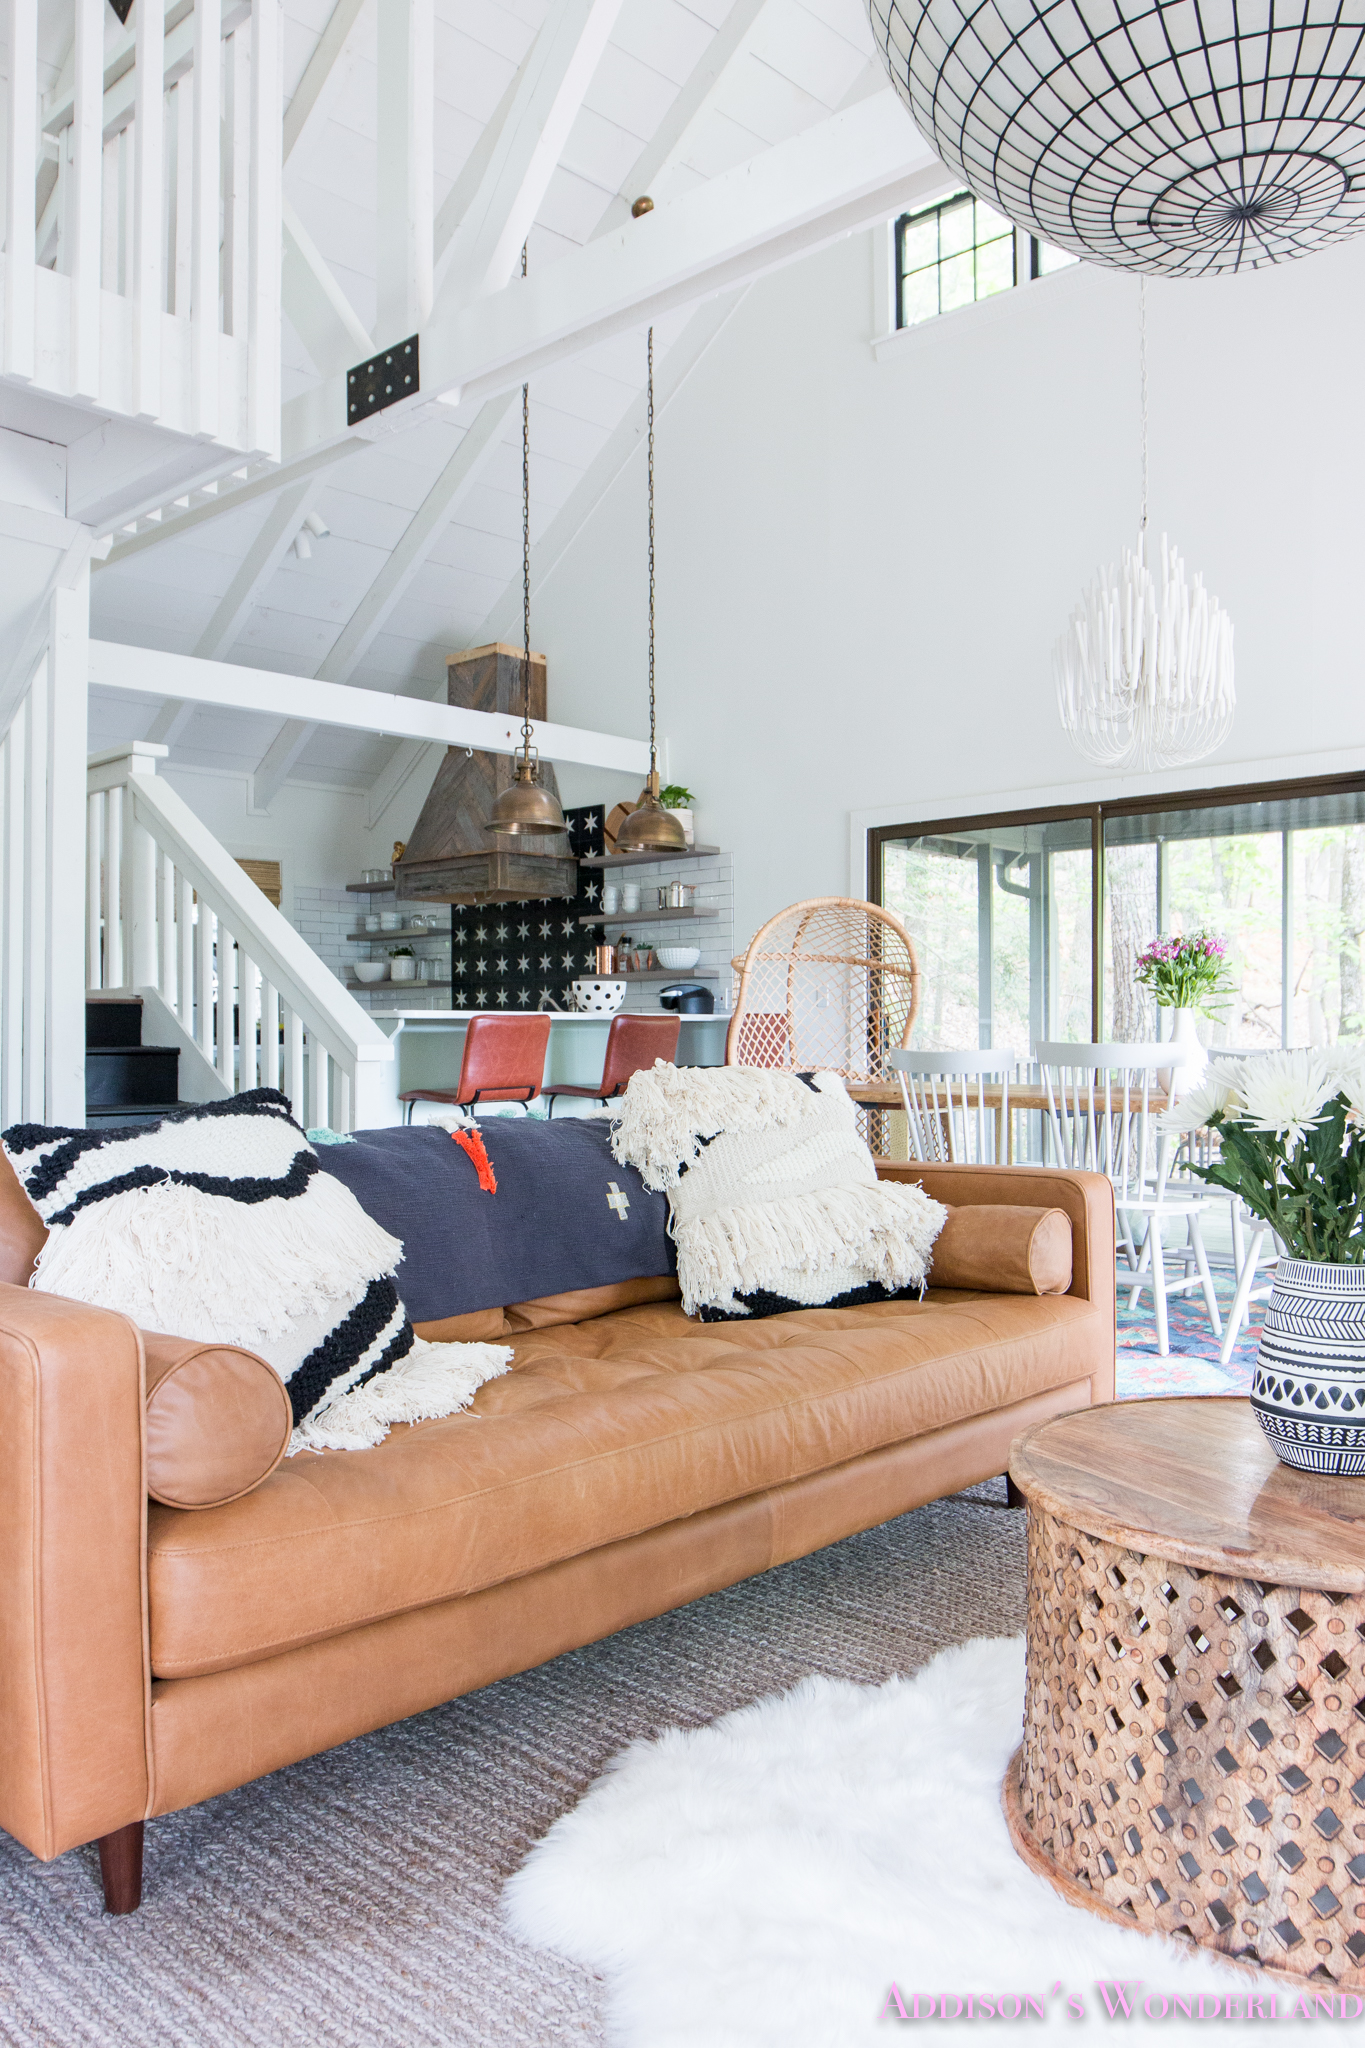 Our Crazy Beautiful New Sven Charme Tan Sofa from Article...